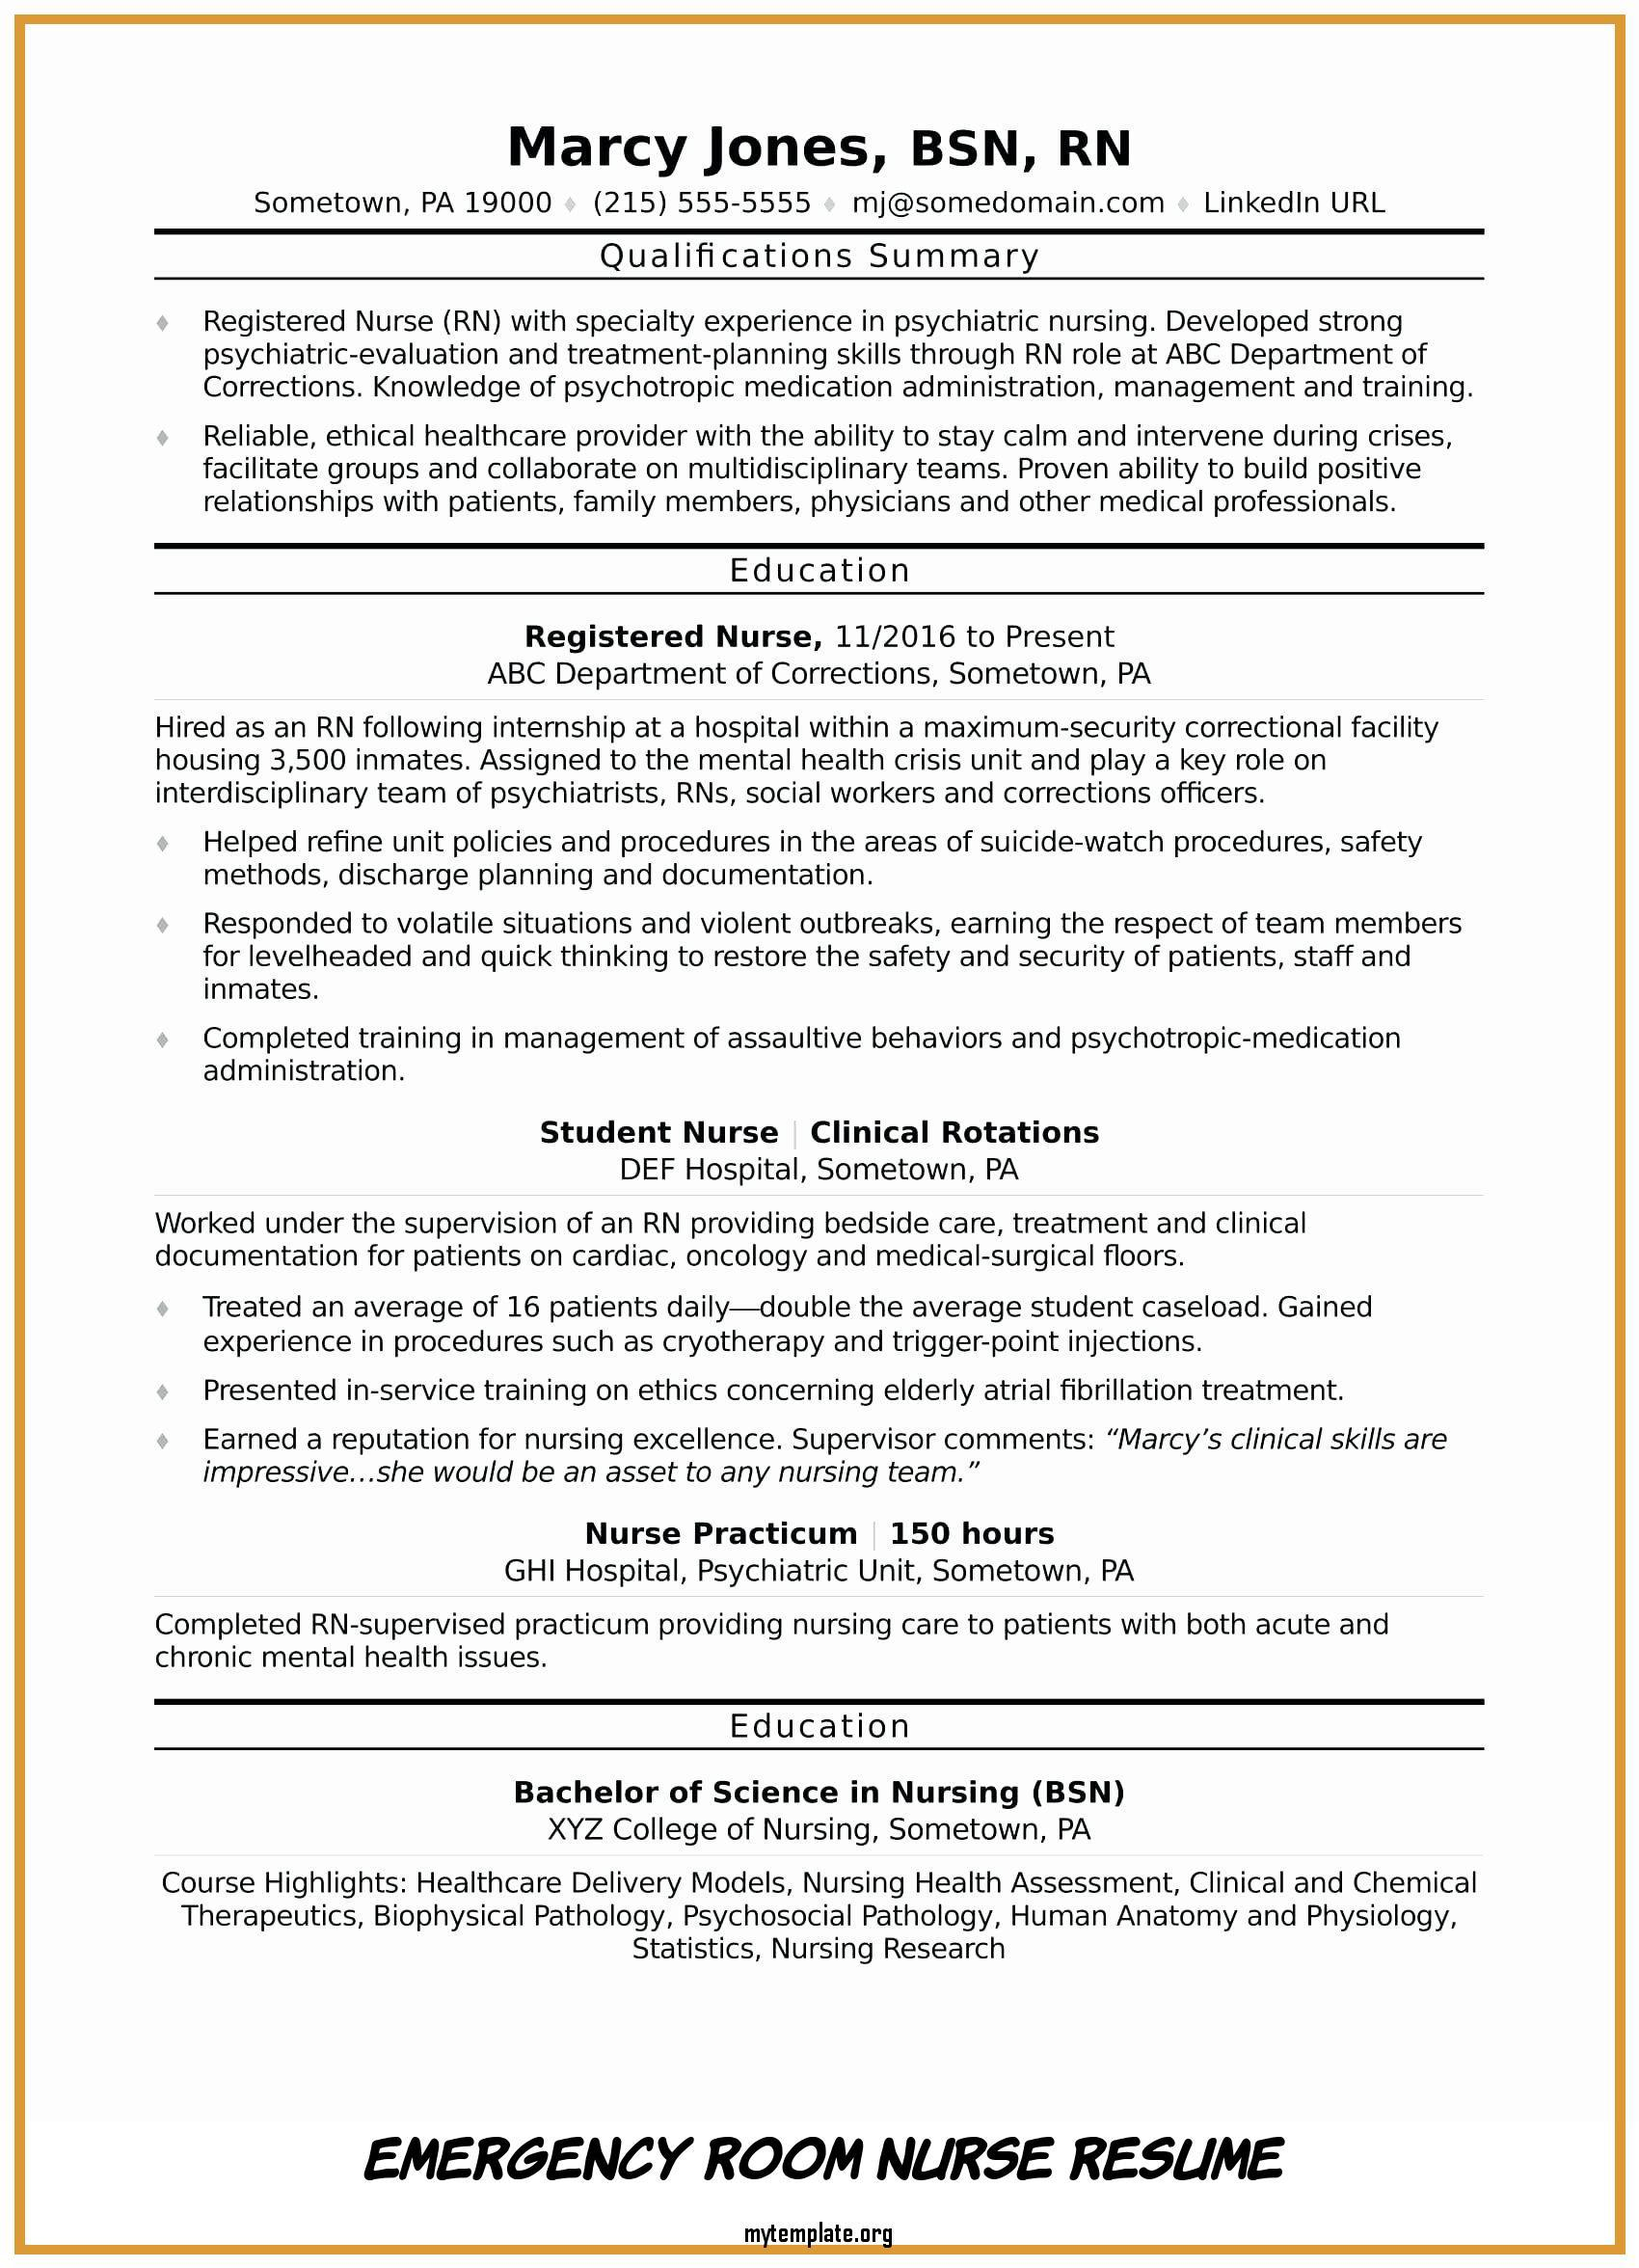 emergency room nurse resume free templates correctional job description for of awesome Resume Correctional Nurse Job Description For Resume